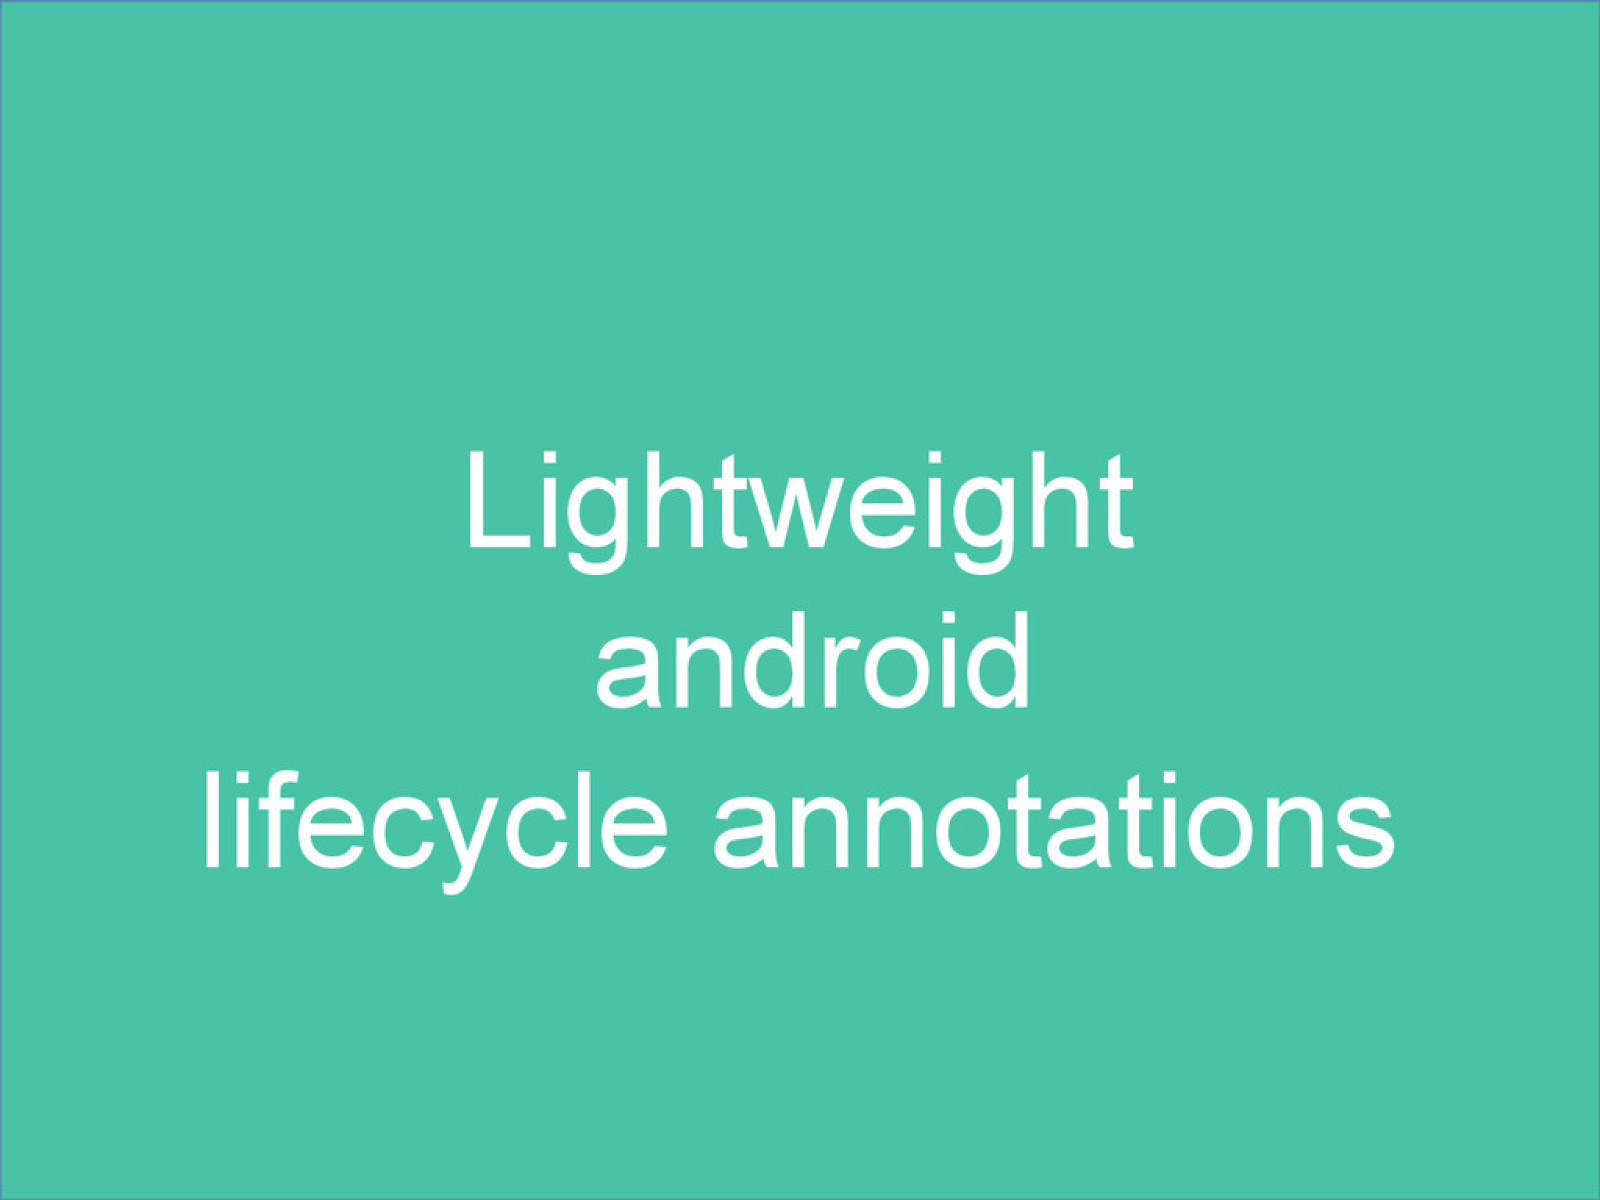 Lightweight Android lifecycle annotations